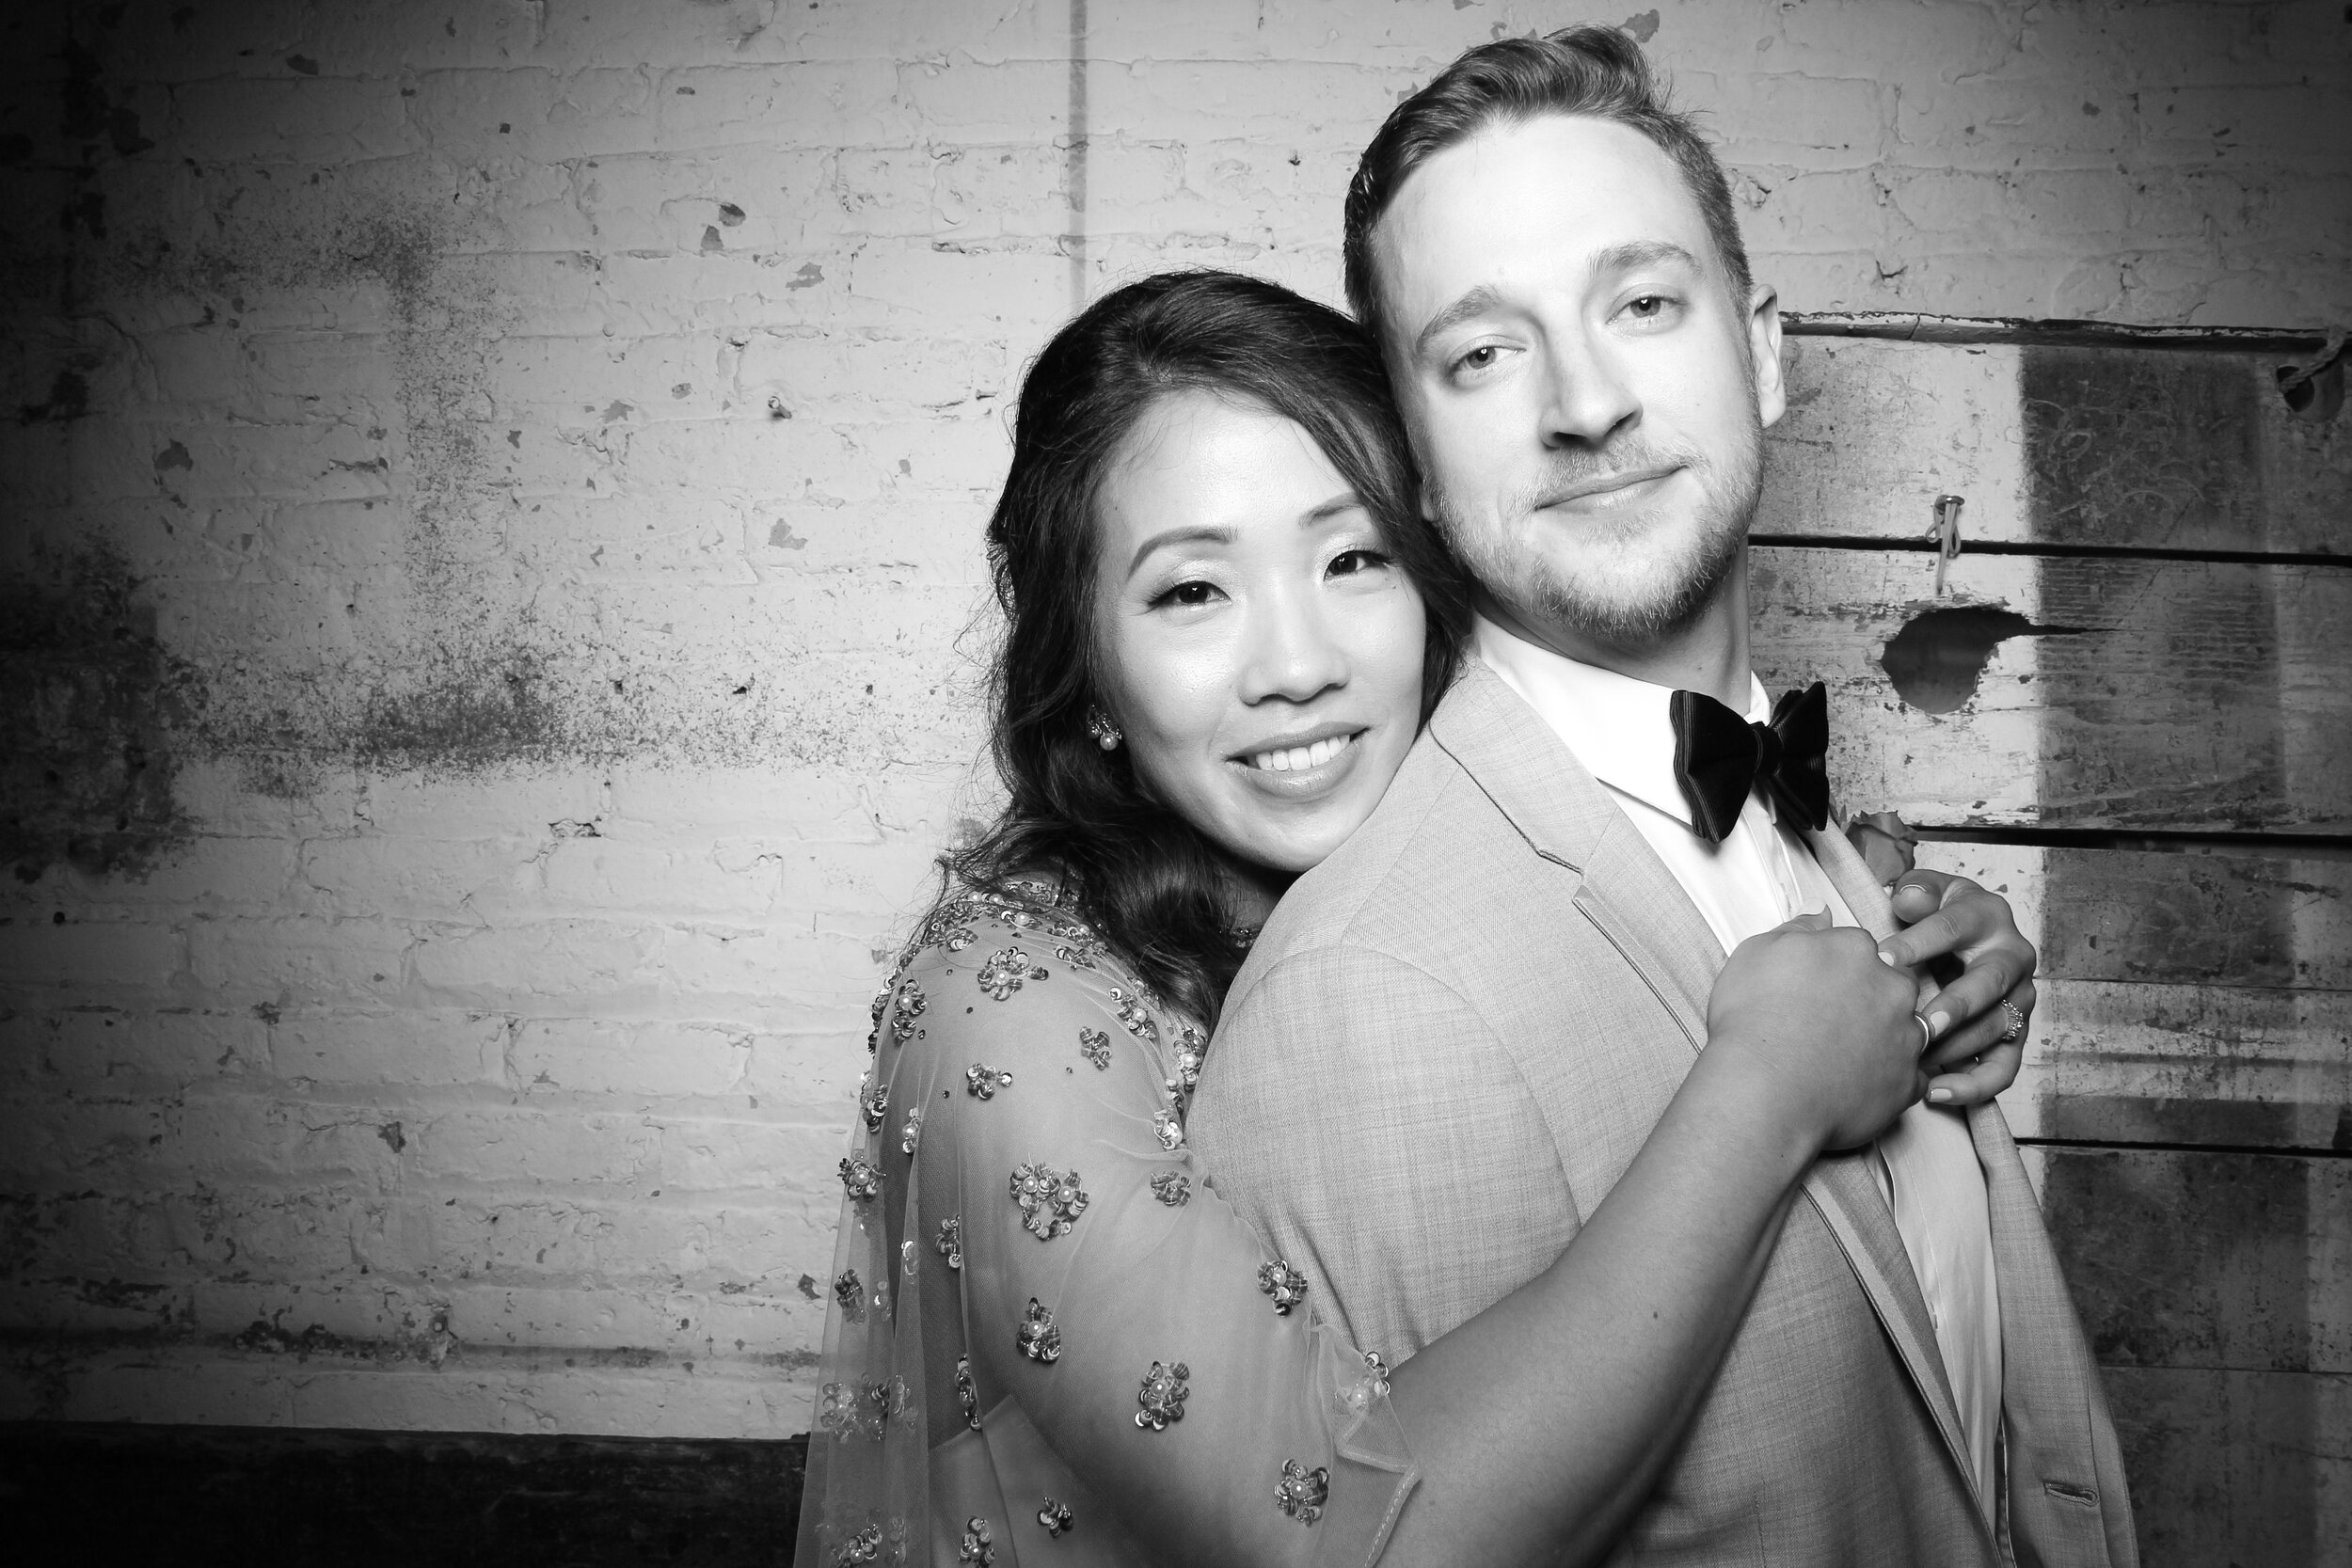 Chicago_Vintage_Wedding_Photobooth_Joinery_08.jpg